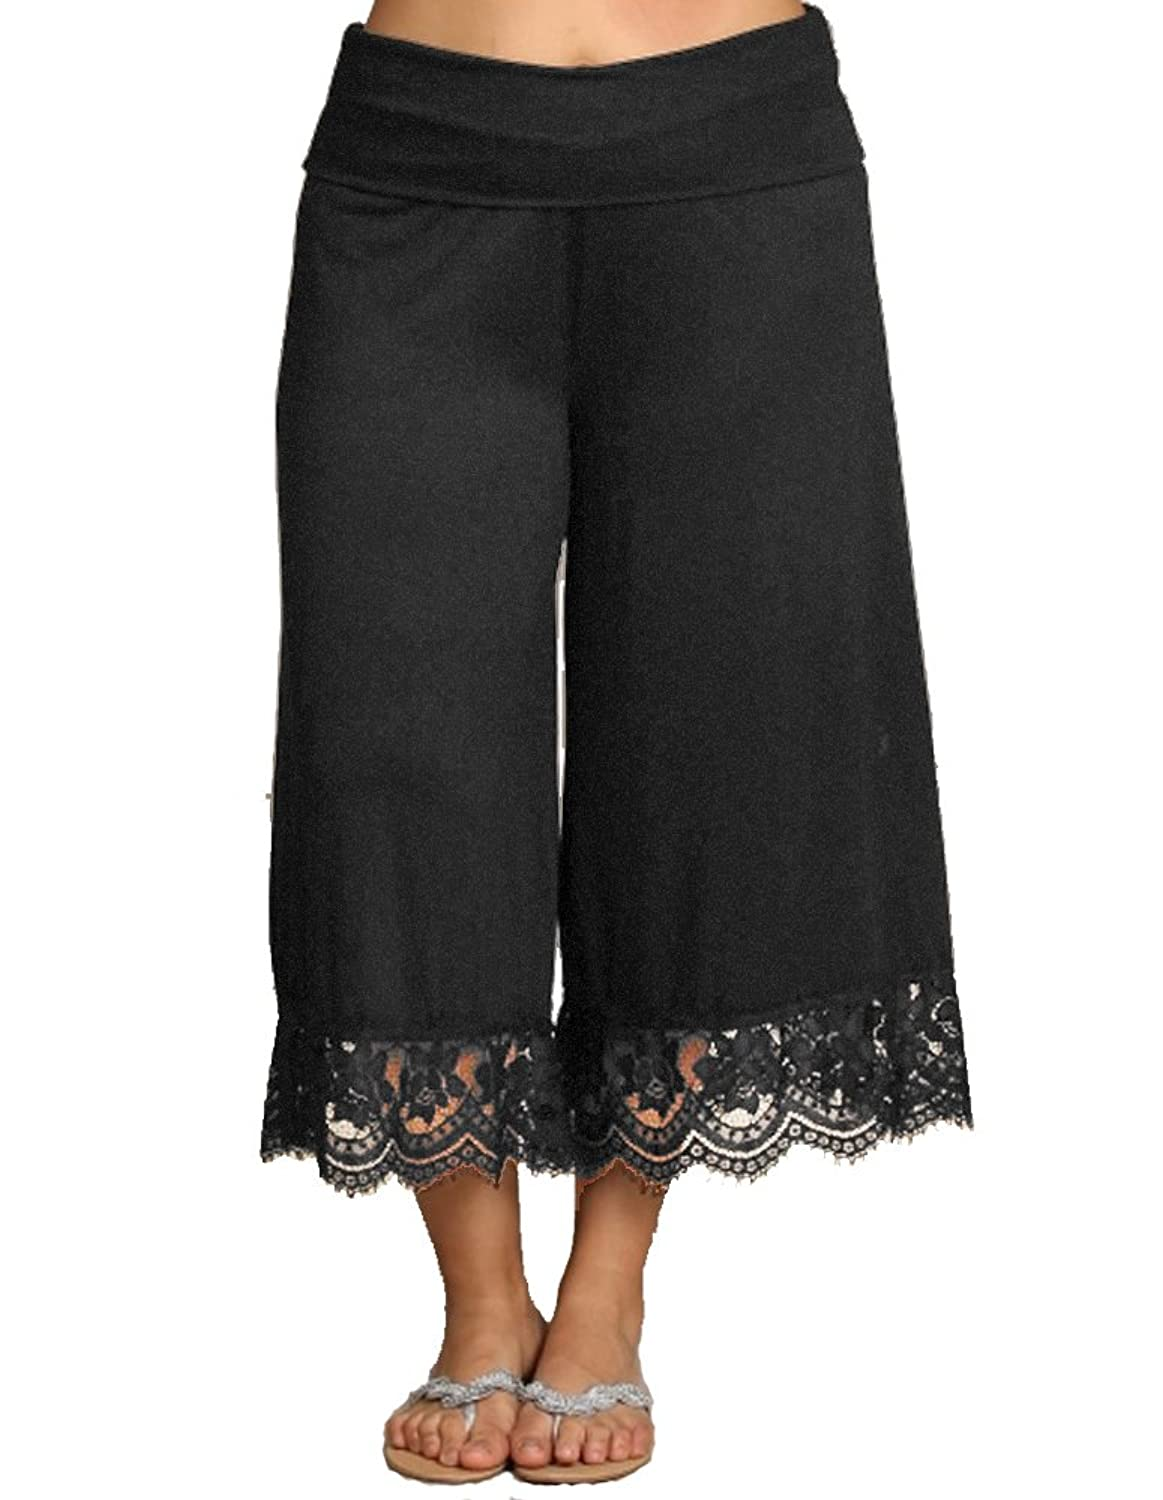 Plus Size Women's Gaucho Pants Capris Flowy Soft Made in the USA ...